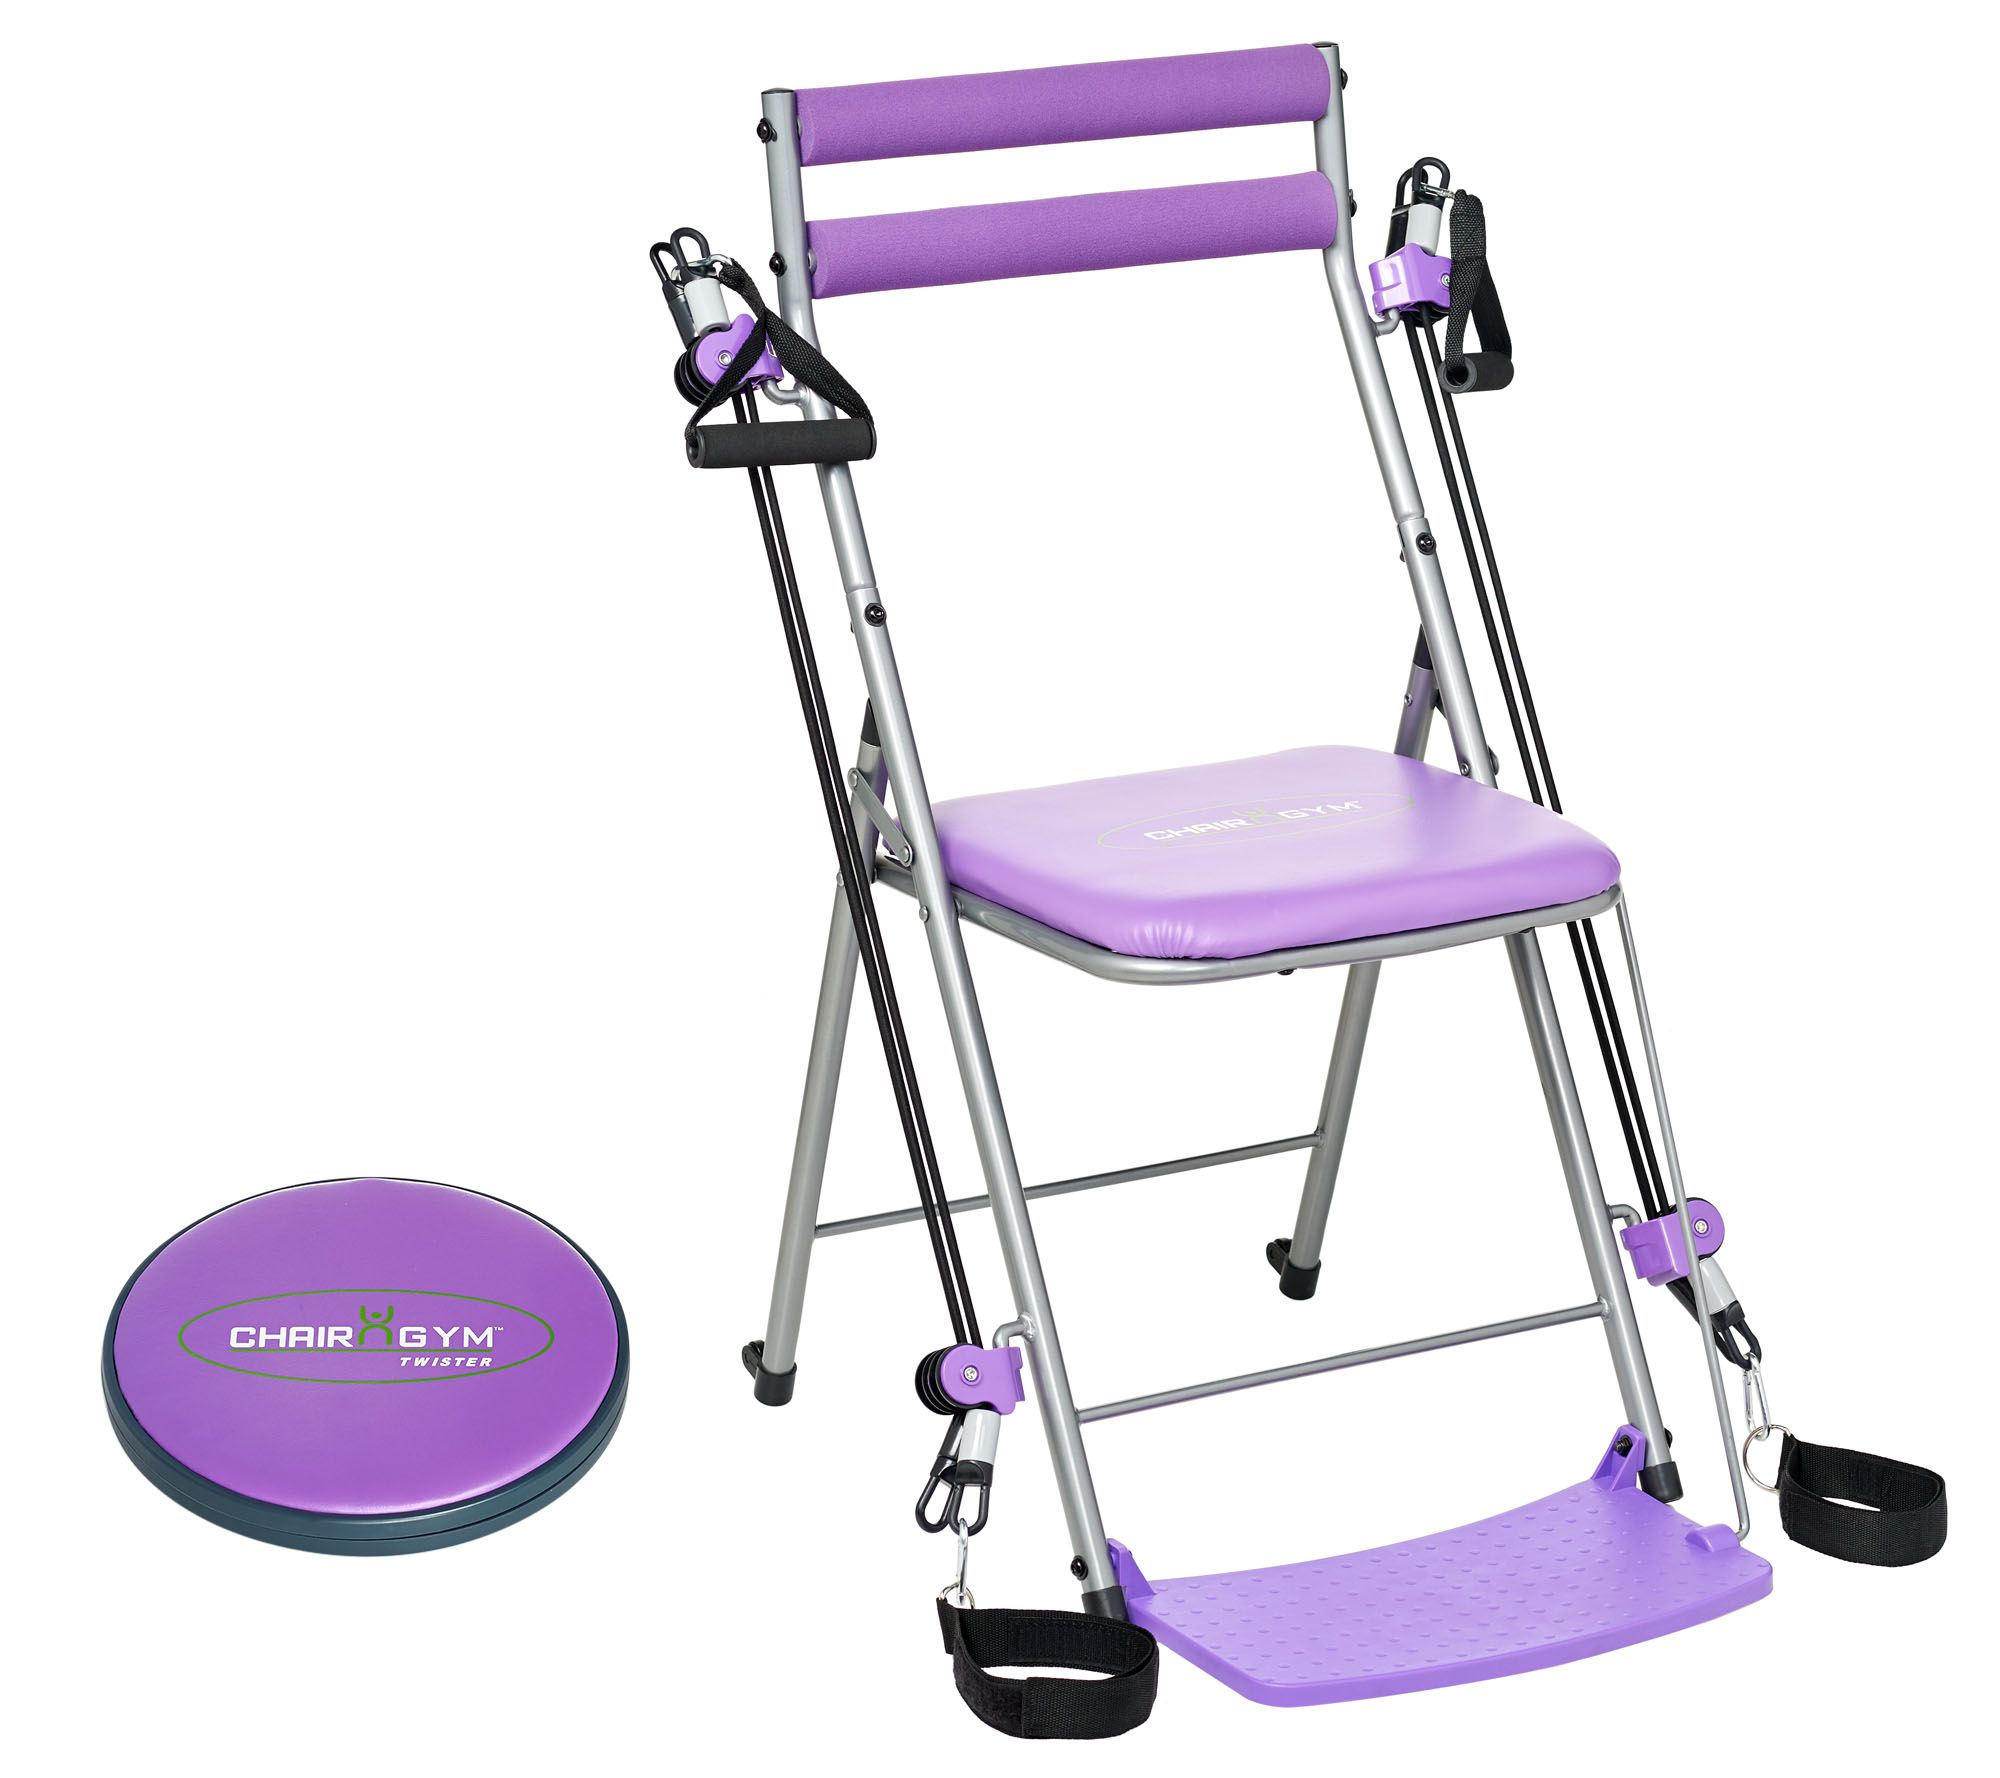 chair gym exercise system with twister seat indoor indian swing workout 3 levels of resistance and 5 dvds page 1 qvc com